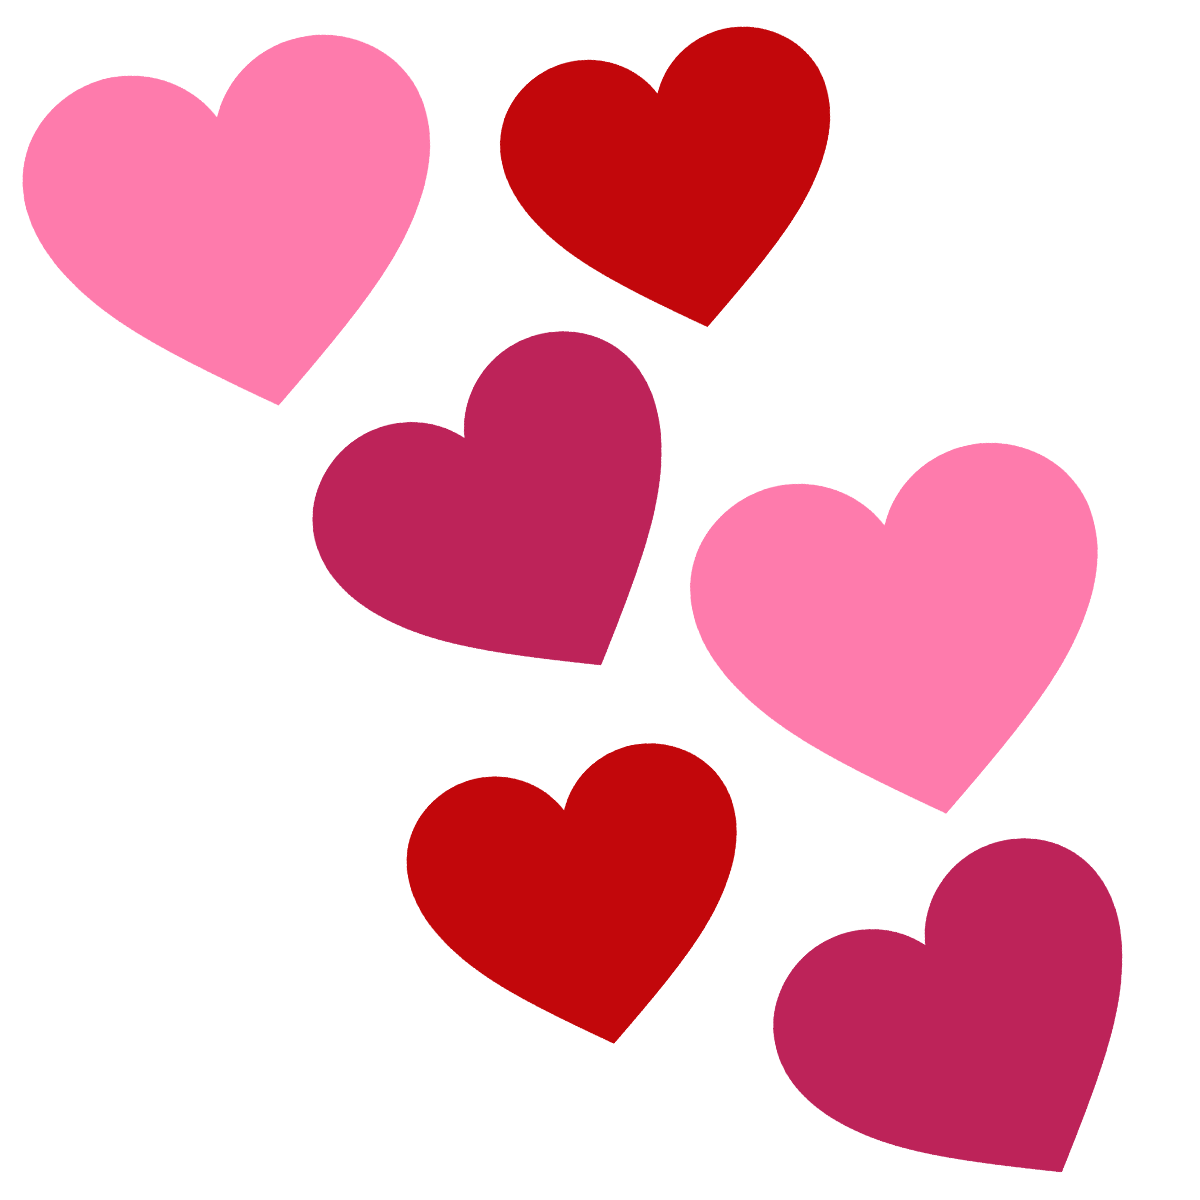 Hearts heart clipart free large images